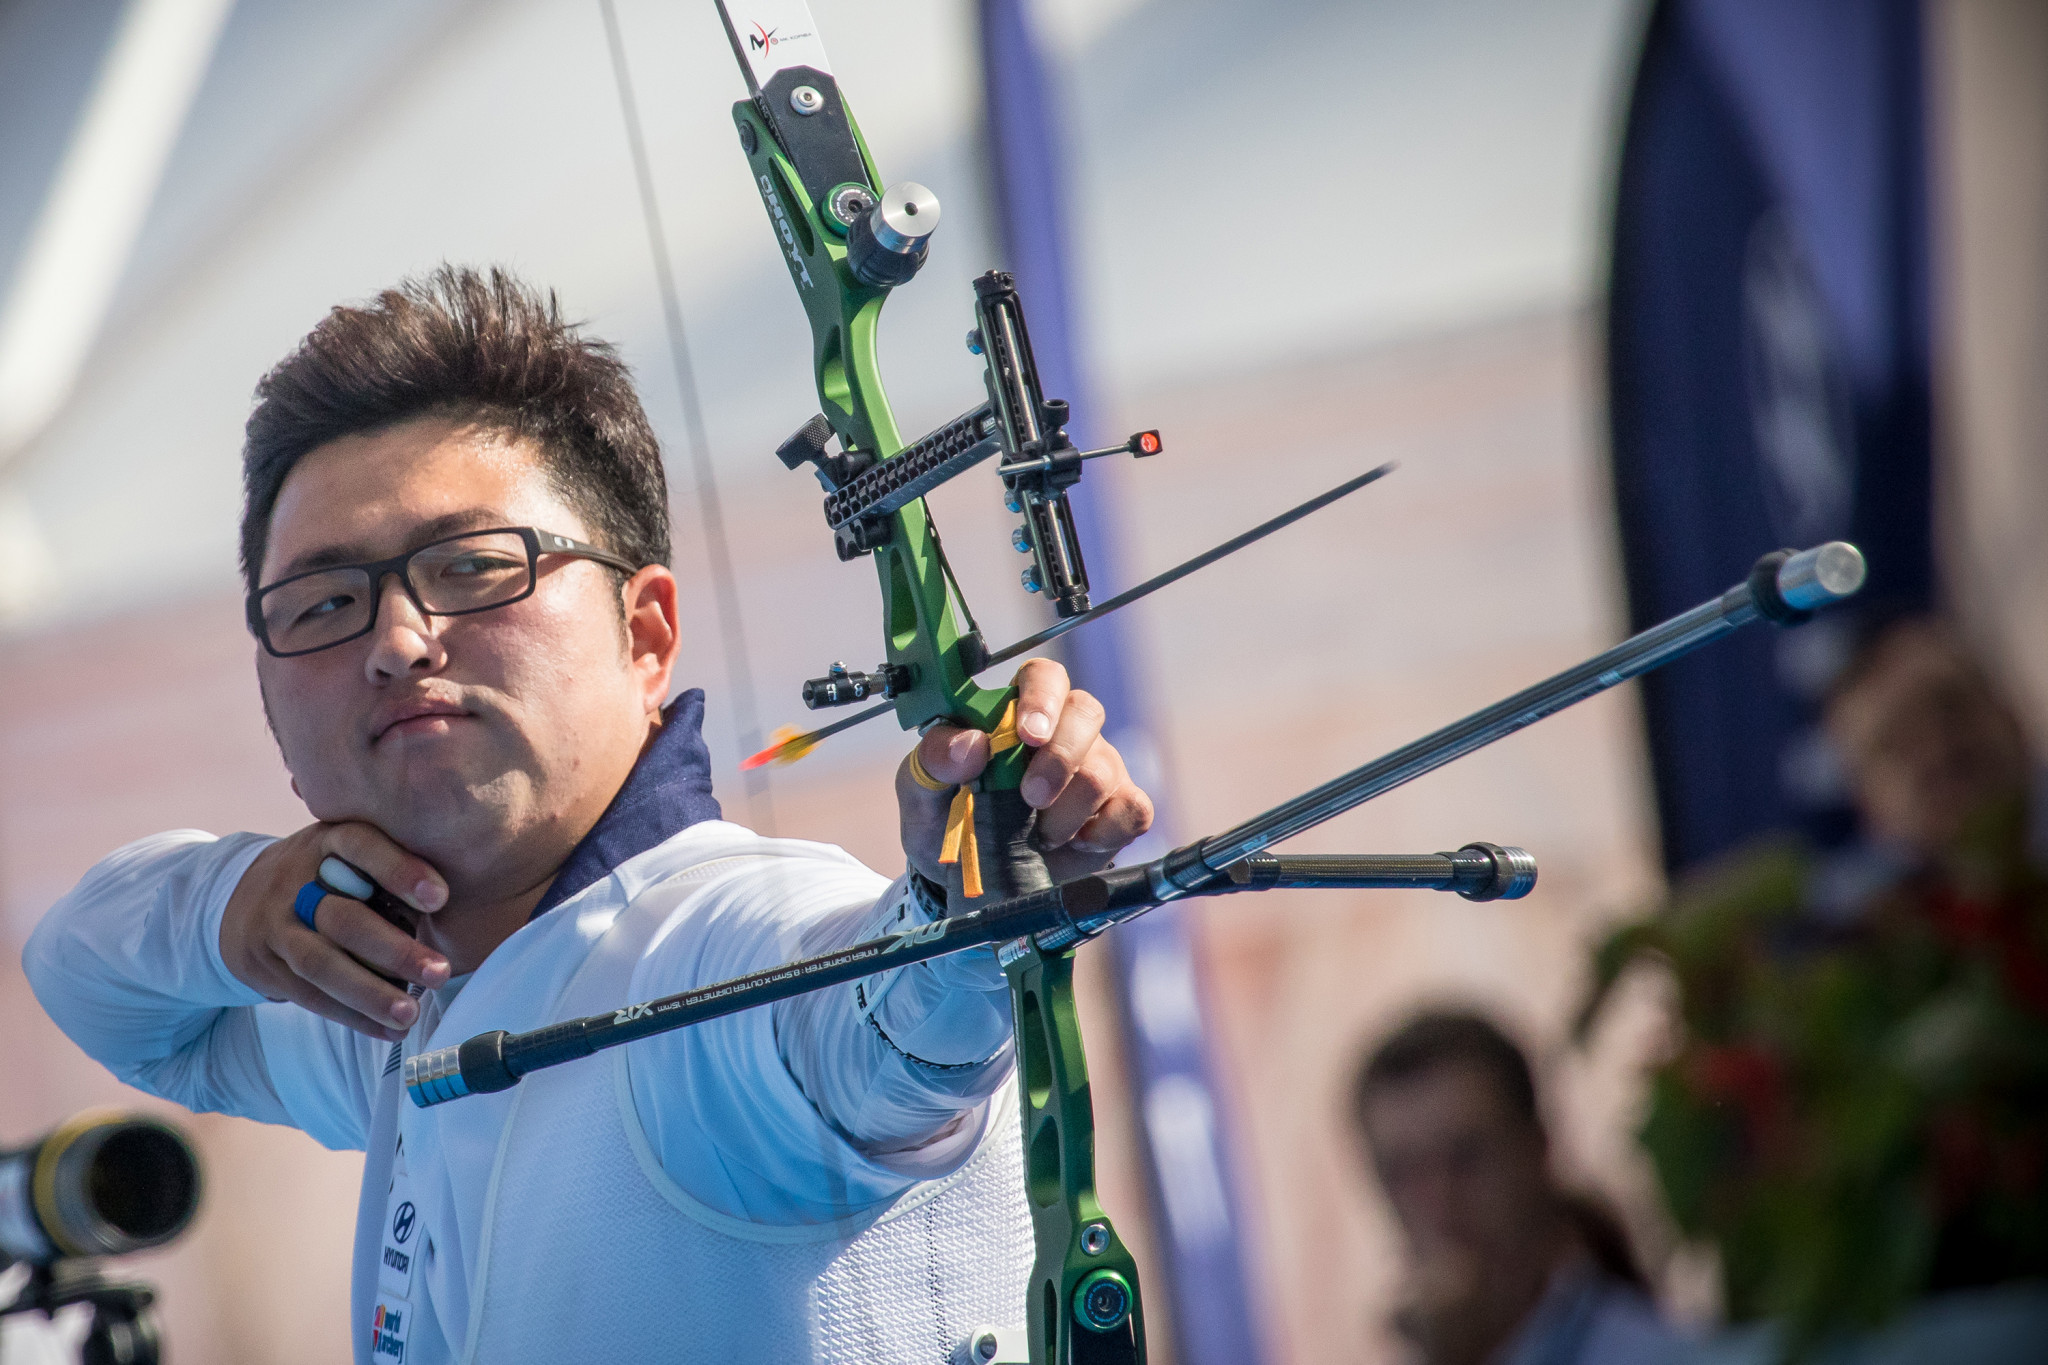 Kim aiming to make history at World Archery Championships in Mexico City